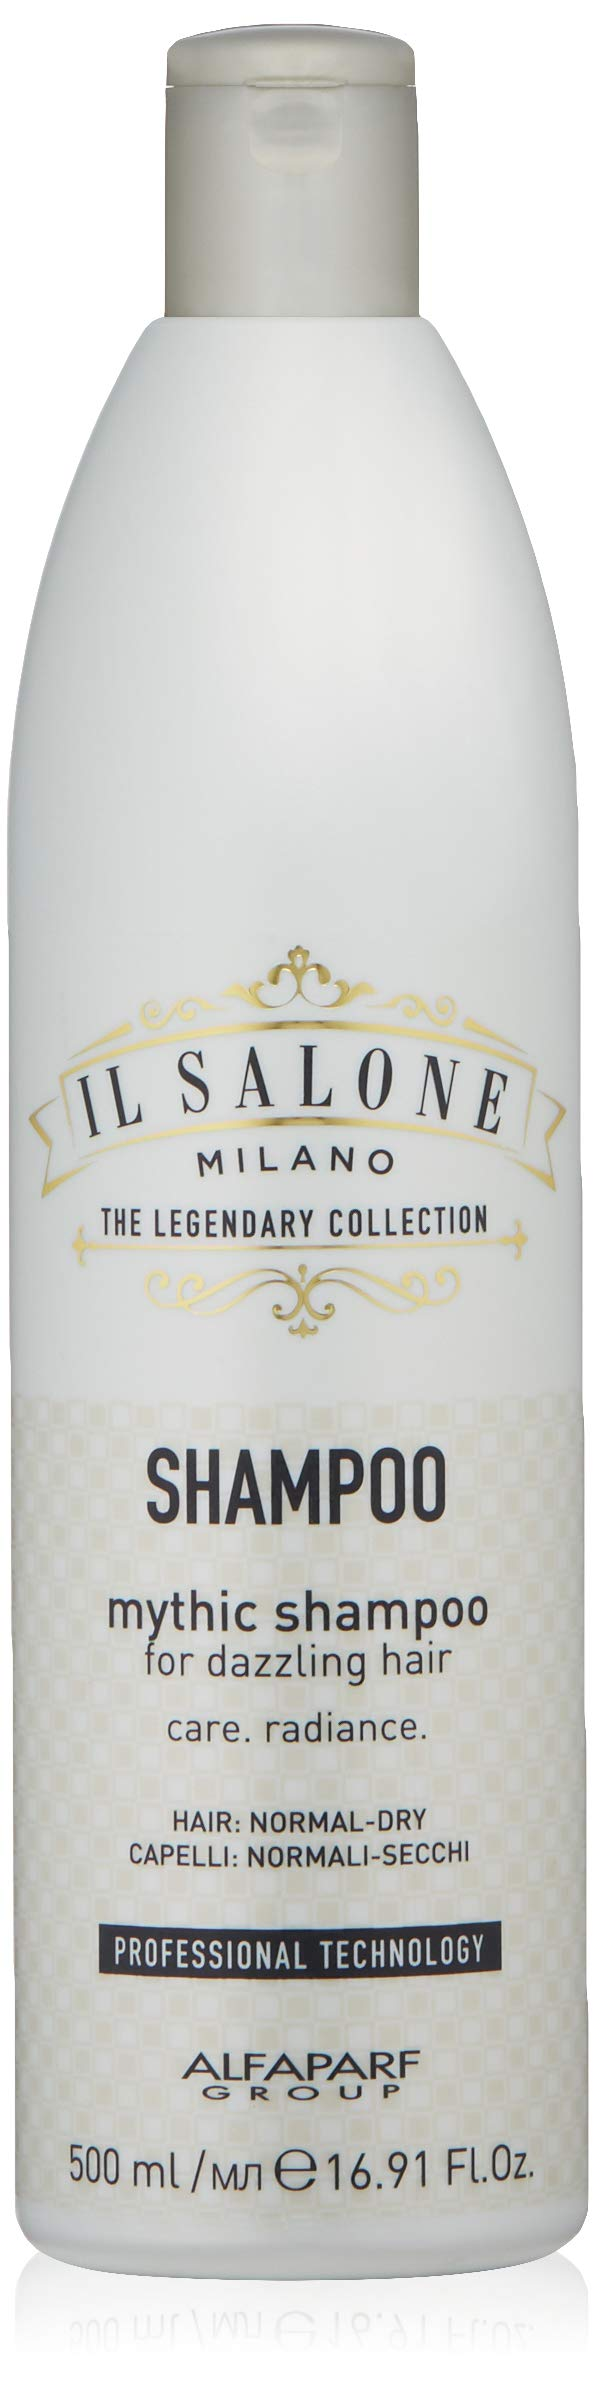 Il Salone Milano Professional Mythic Shampoo for Normal to Dry Hair - Moisturizes and Adds Shine - Premium Quality - 16.91 Fl. Oz / 500ml